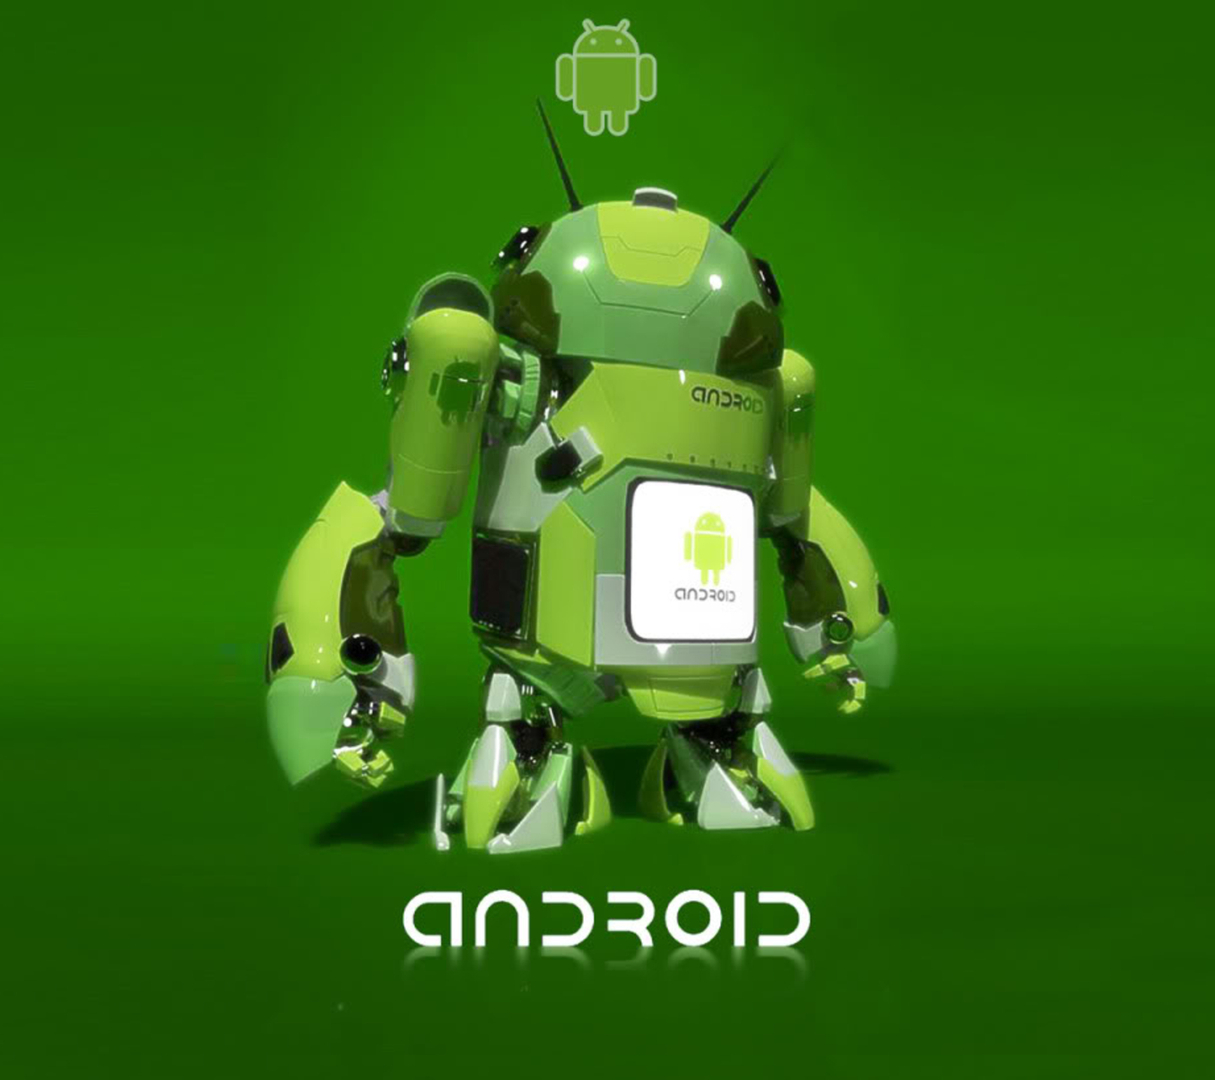 Cool Wallpapers For Android